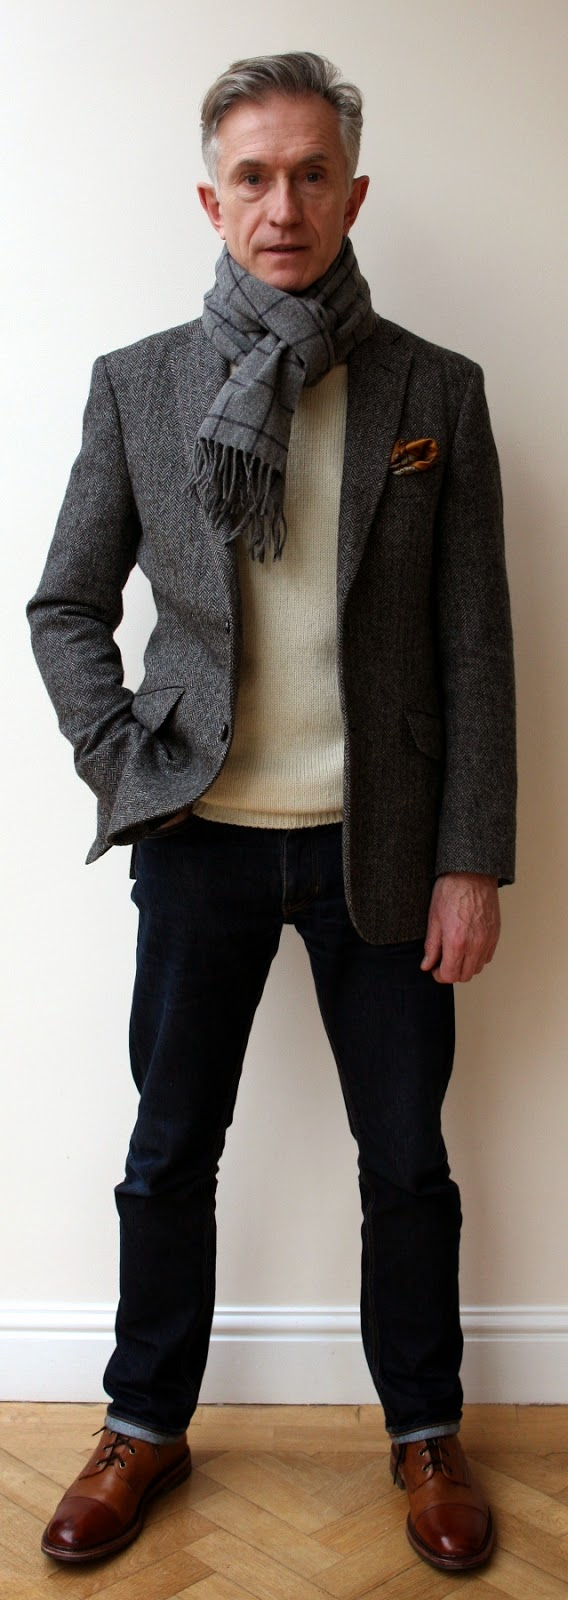 Grey Fox One jacket - five styles. Making full use of your wardrobe with Sarah Gilfillan and an ...